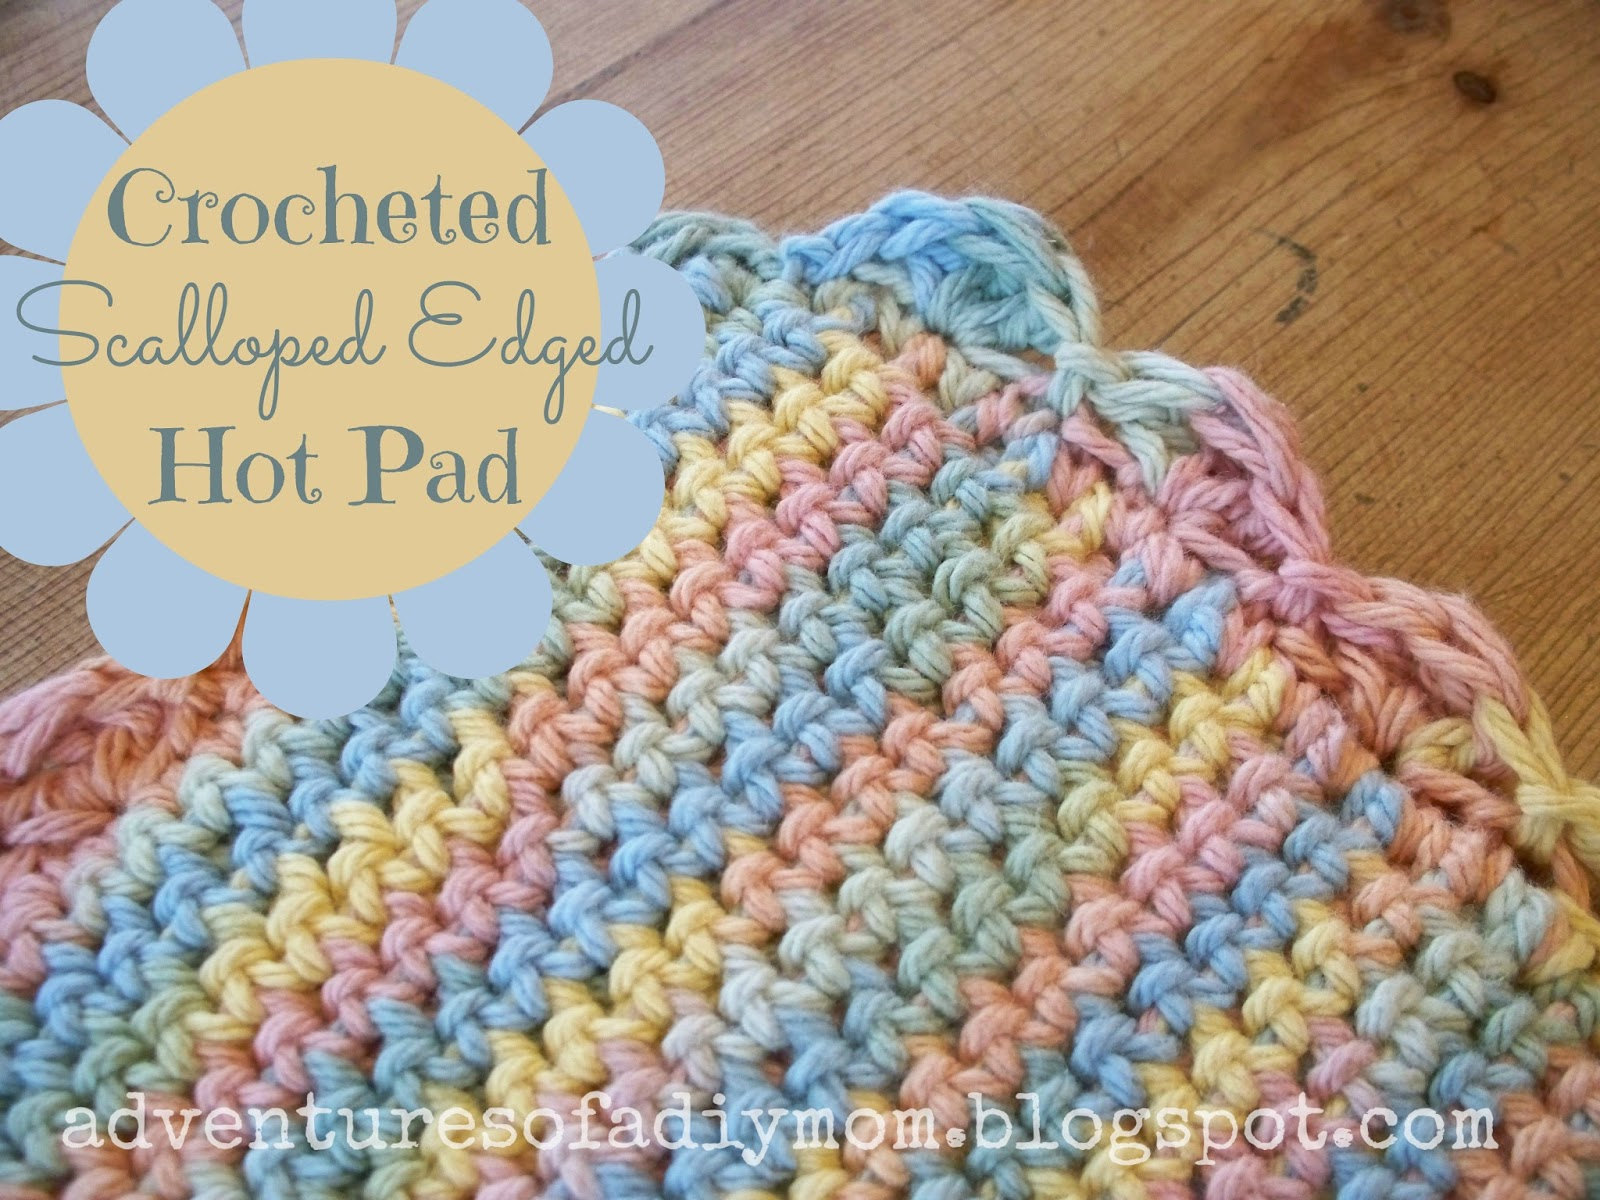 Crochet Patterns Hot Pads : crocheted scalloped edged hot pad crocheted winter hat crocheted ...